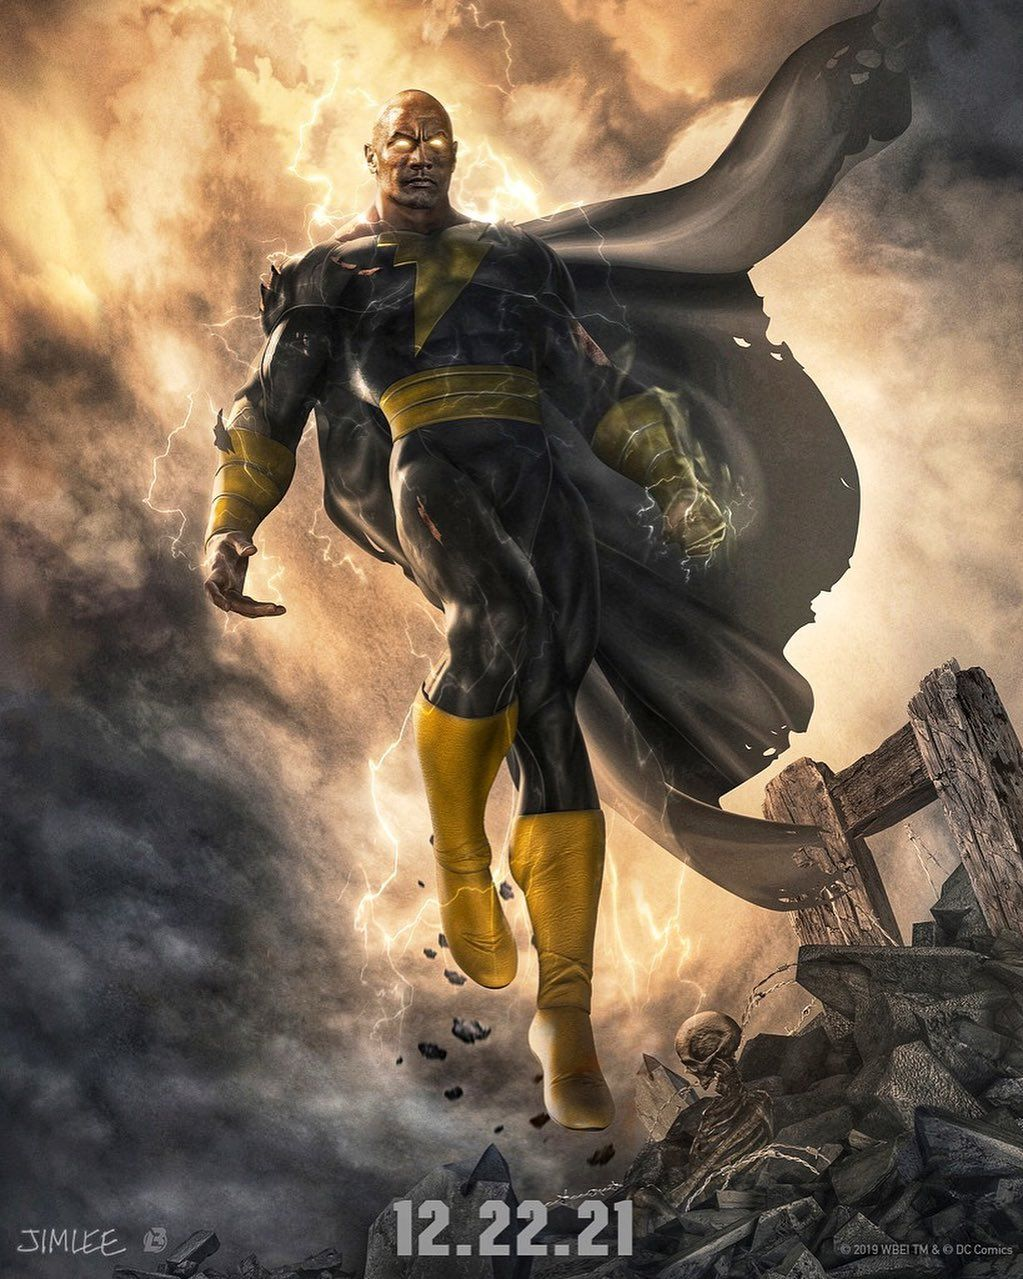 Dwayne Johnson confirms Black Adam release date with seriously cool concept art